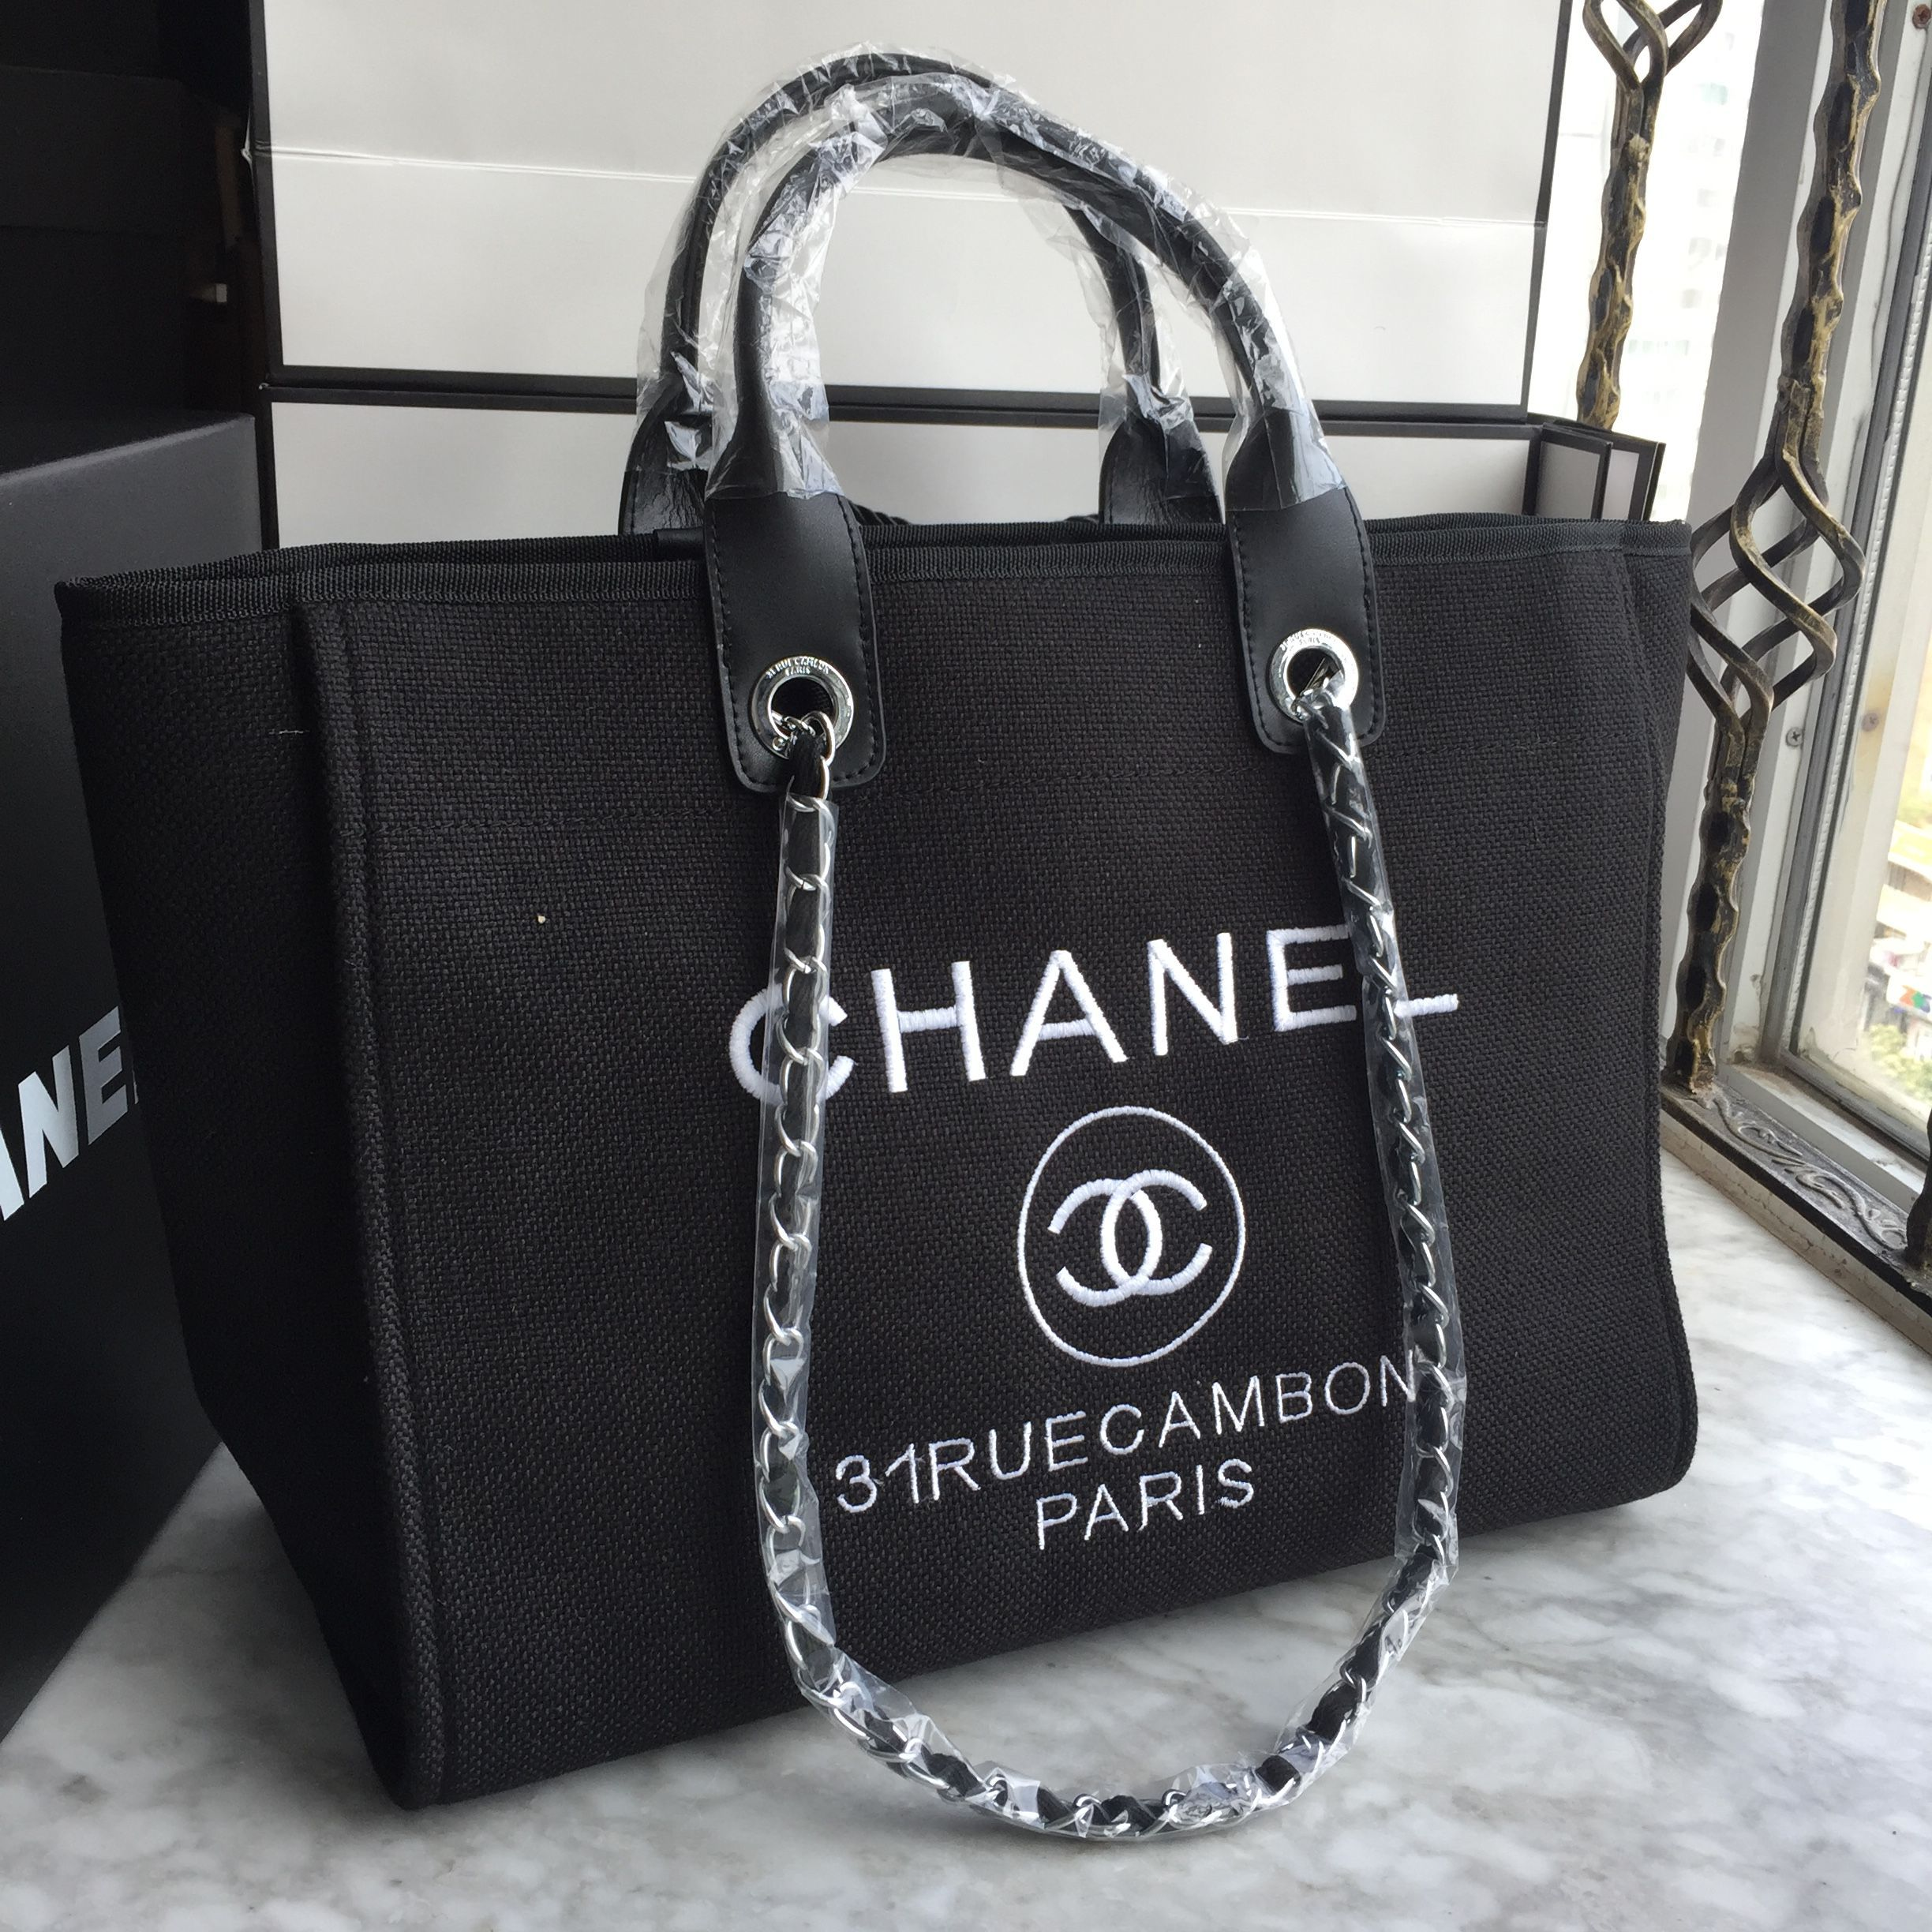 Chanel woman cabas canvas shopping tote bag black   Bags in 2019 ... 938055e462